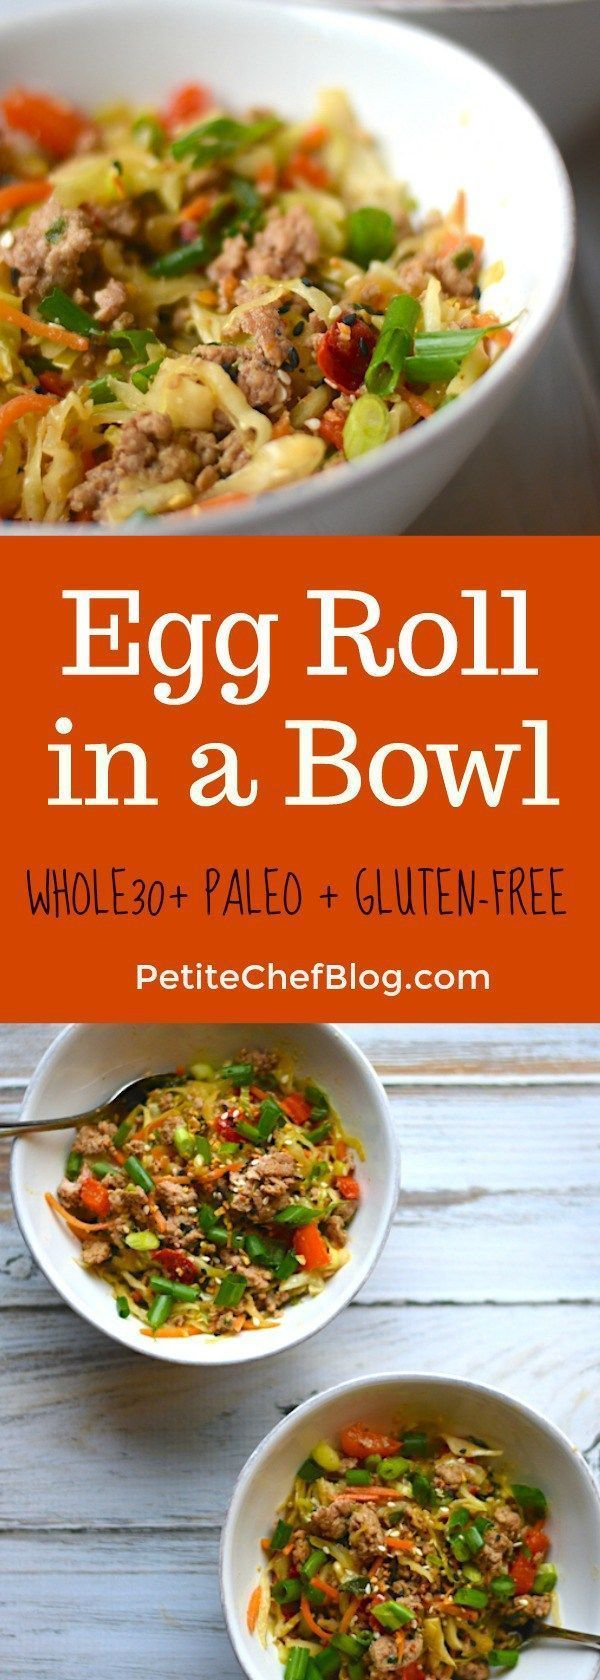 Egg Roll in a Bowl - Whole30 and Paleo Friendly recipe | So easy and delicious! | PETITECHEFBLOG.COM